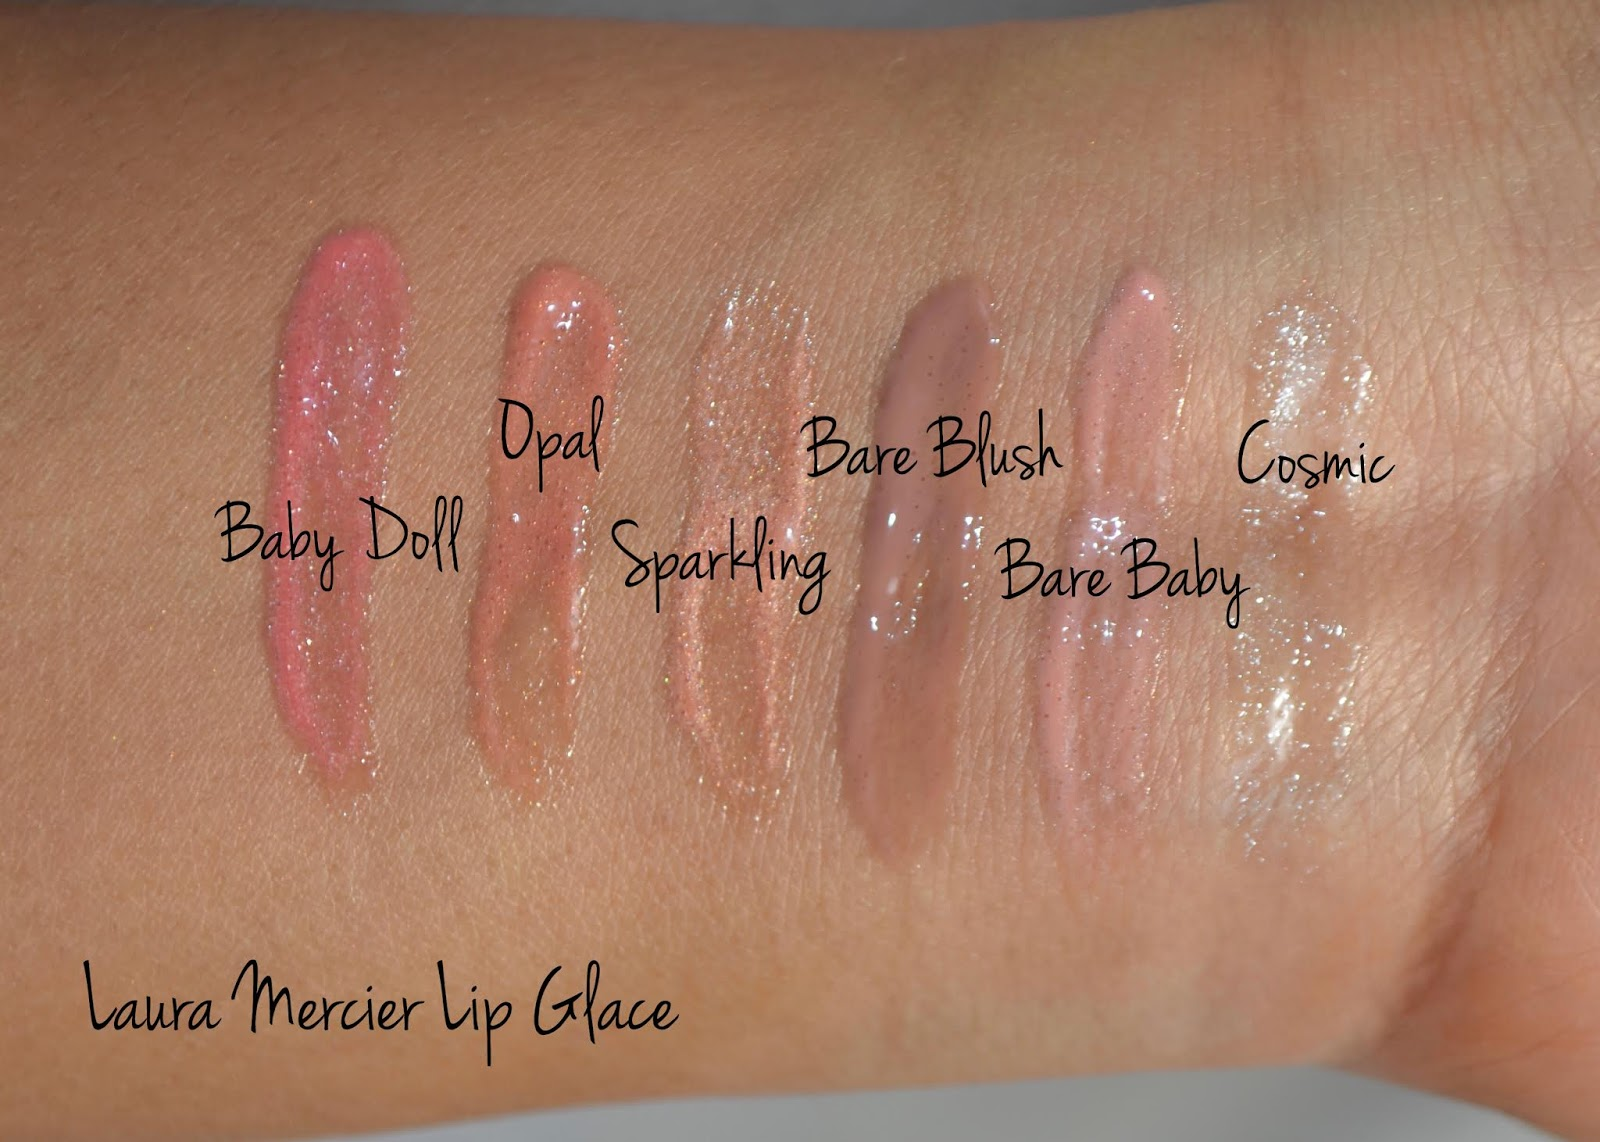 Laura Mercier Lip Glace Swatches